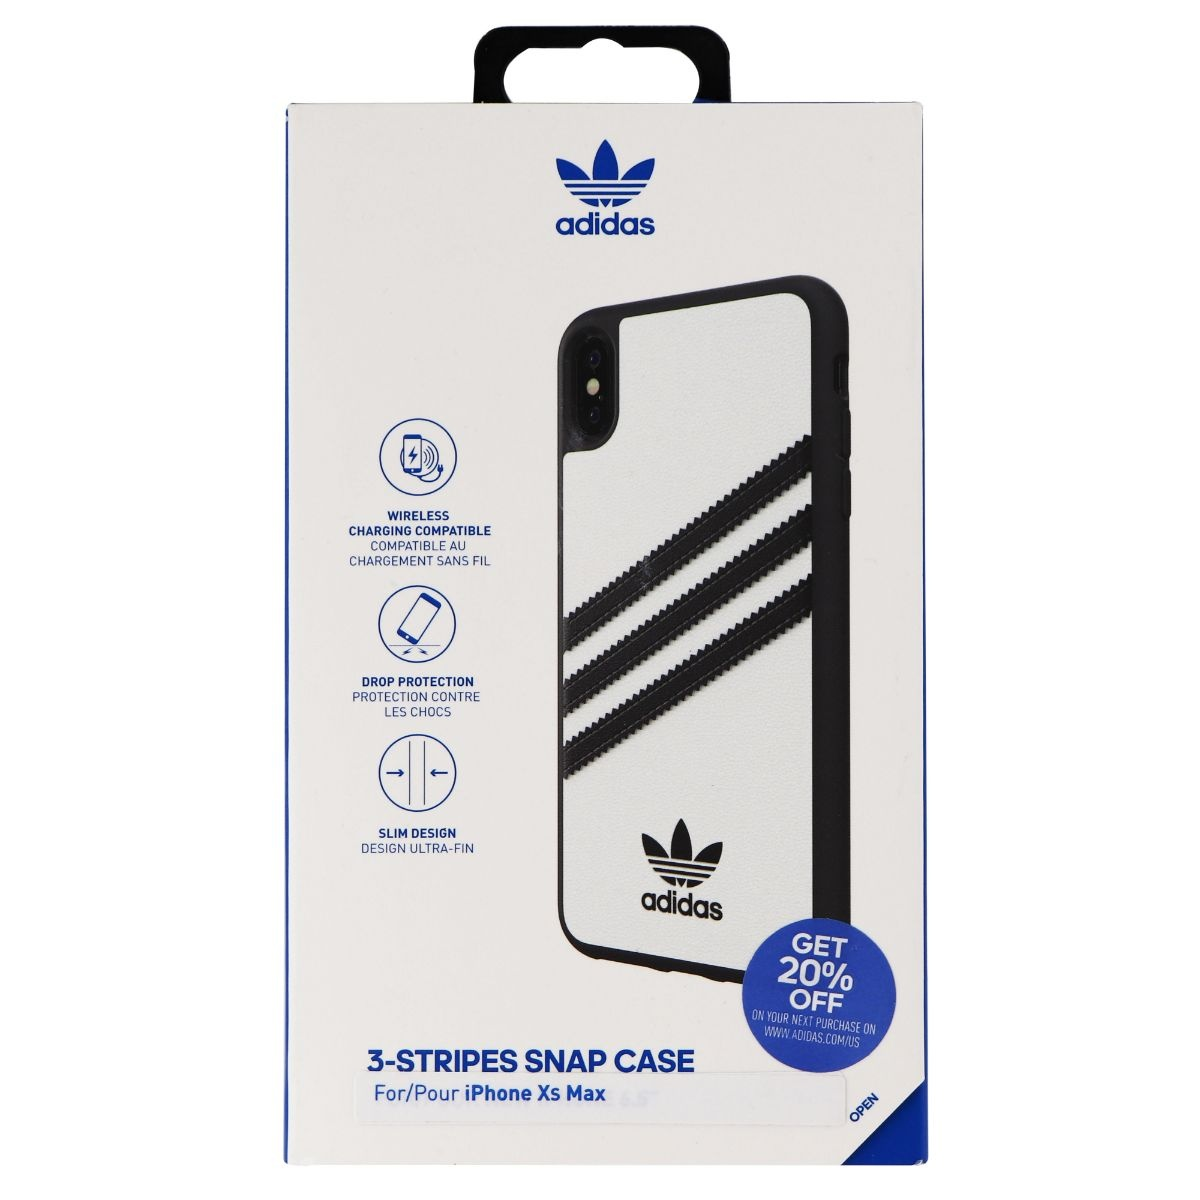 Adidas 3-Stripes Snap Case for Apple iPhone XS Max - White w/ Black Stipes